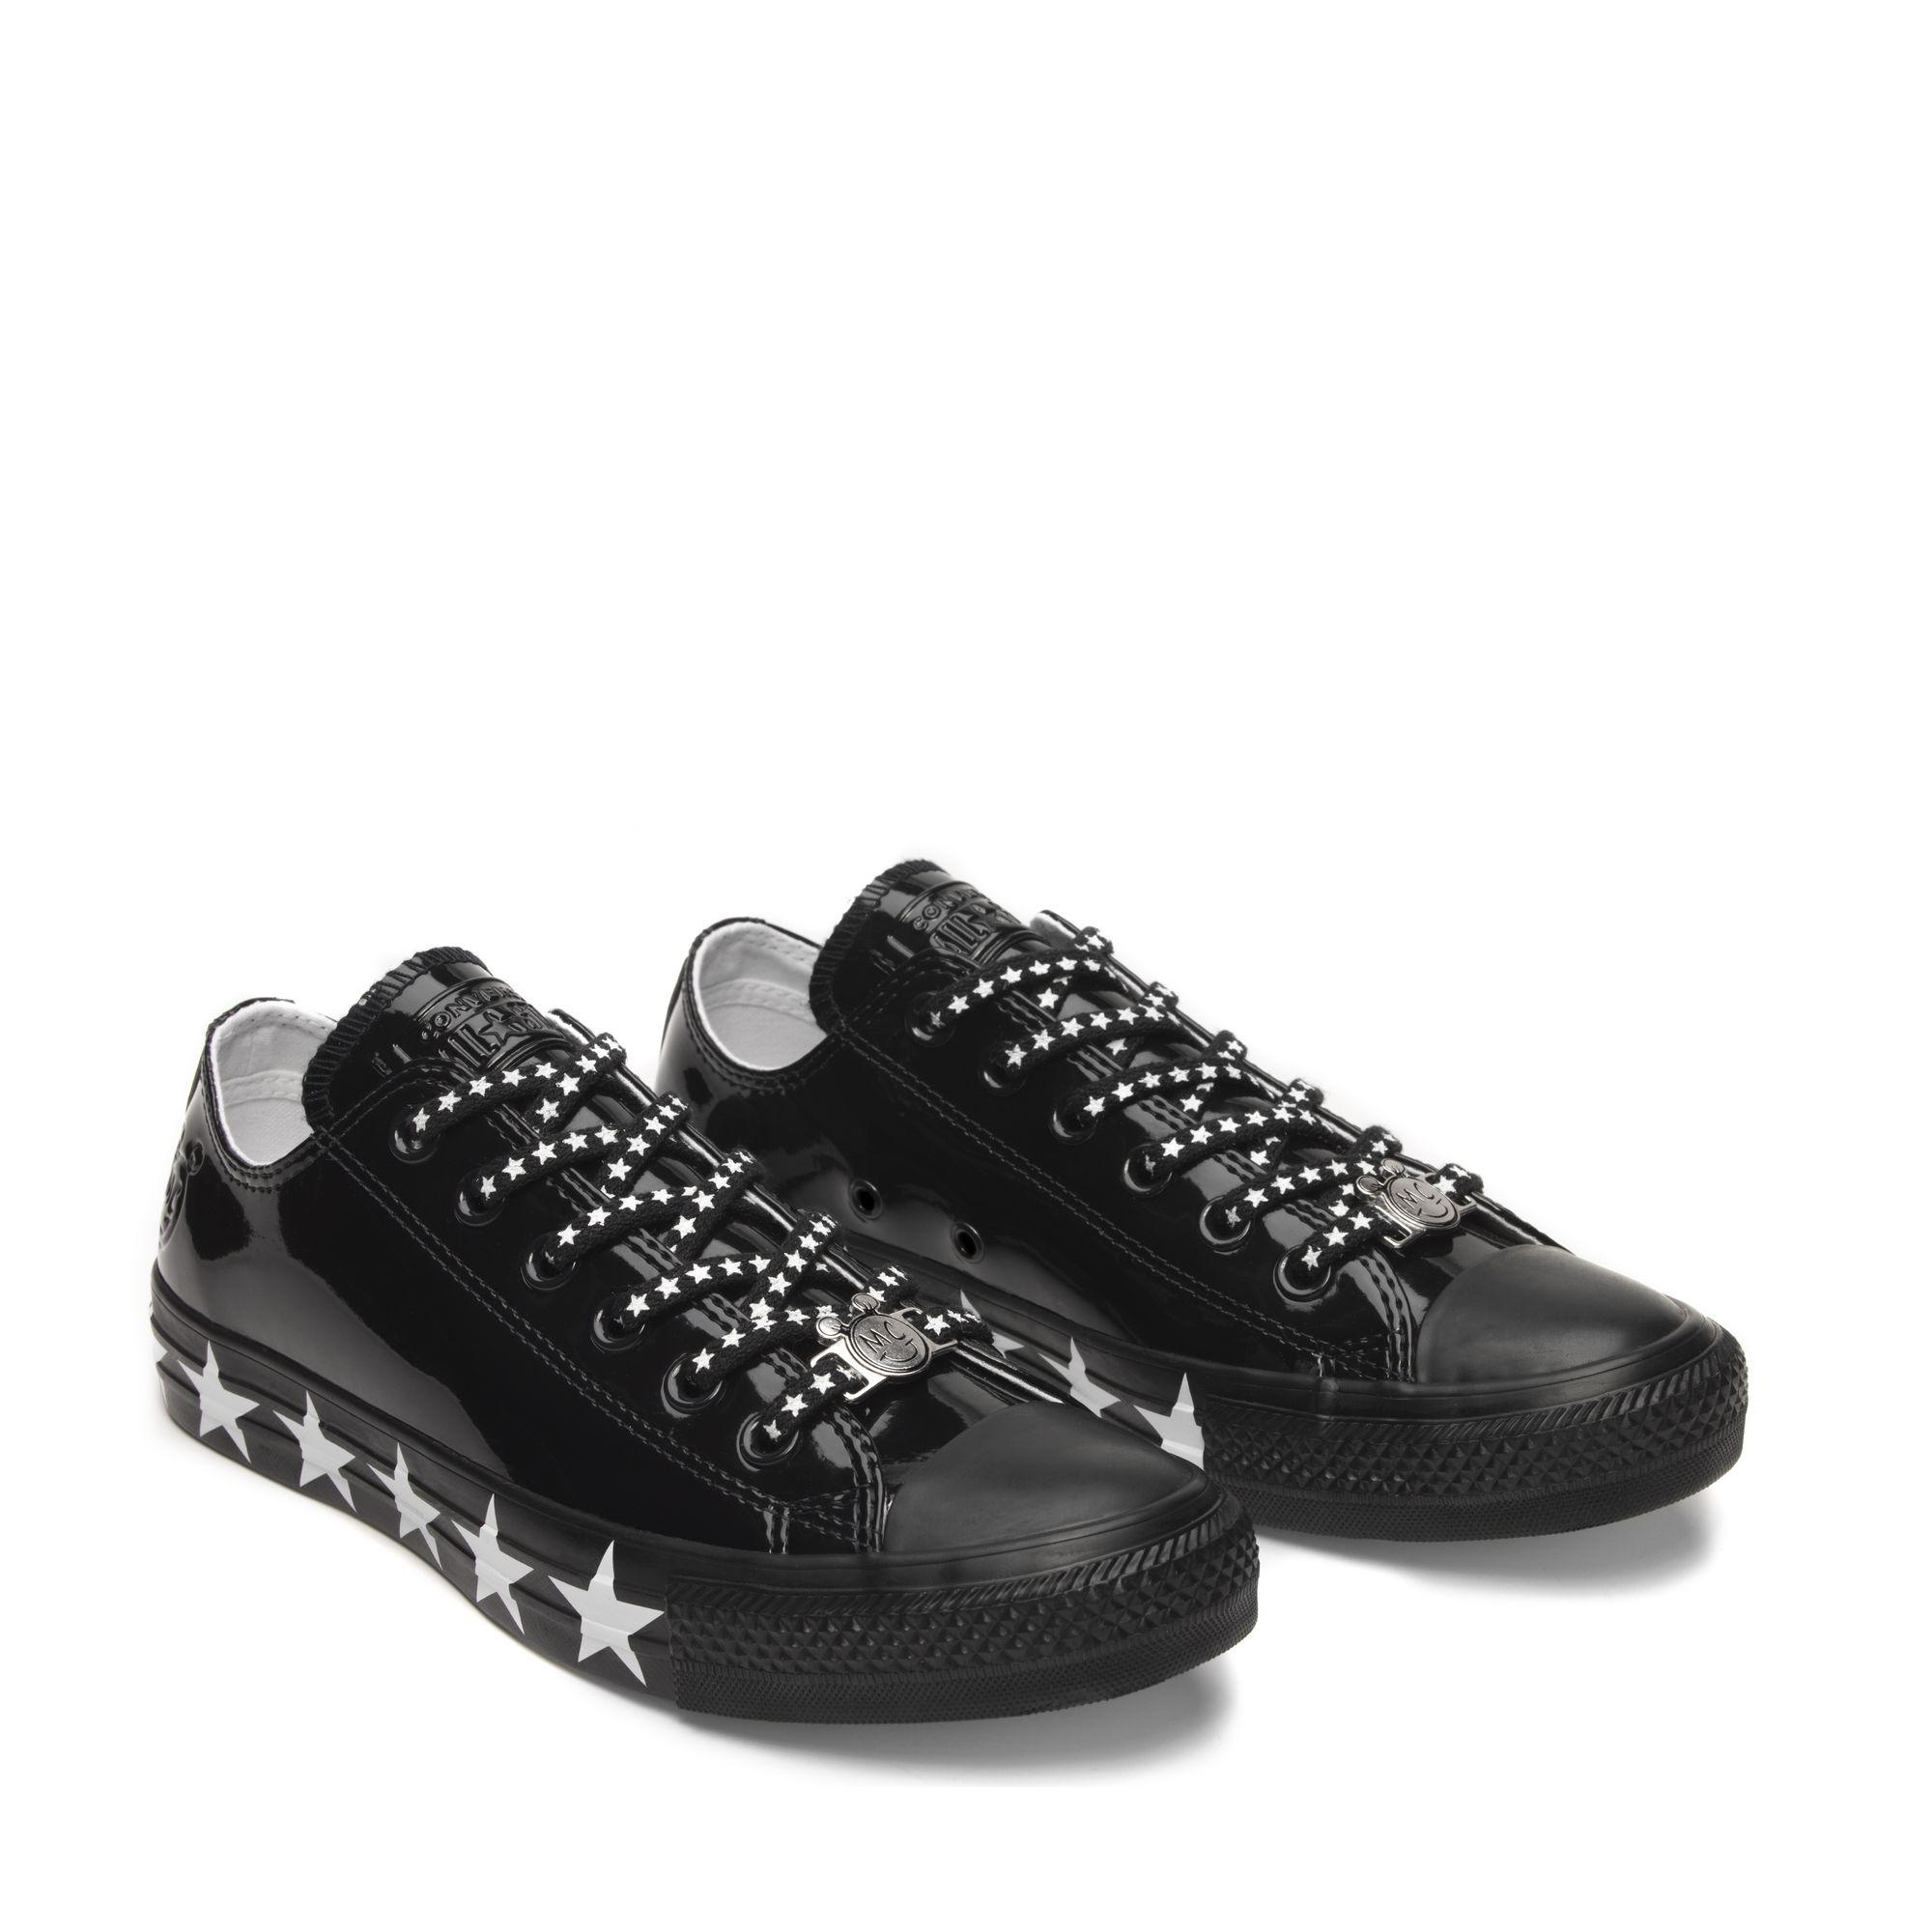 Jual Converse Chuck Taylor All Star Low Sneakers Unisex Chuck Size Source ·  CONVERSE X MILEY CYRUS CHUCK TAYLOR ALL STAR OX BLACK WHITE BLACK bbad2a5c6c